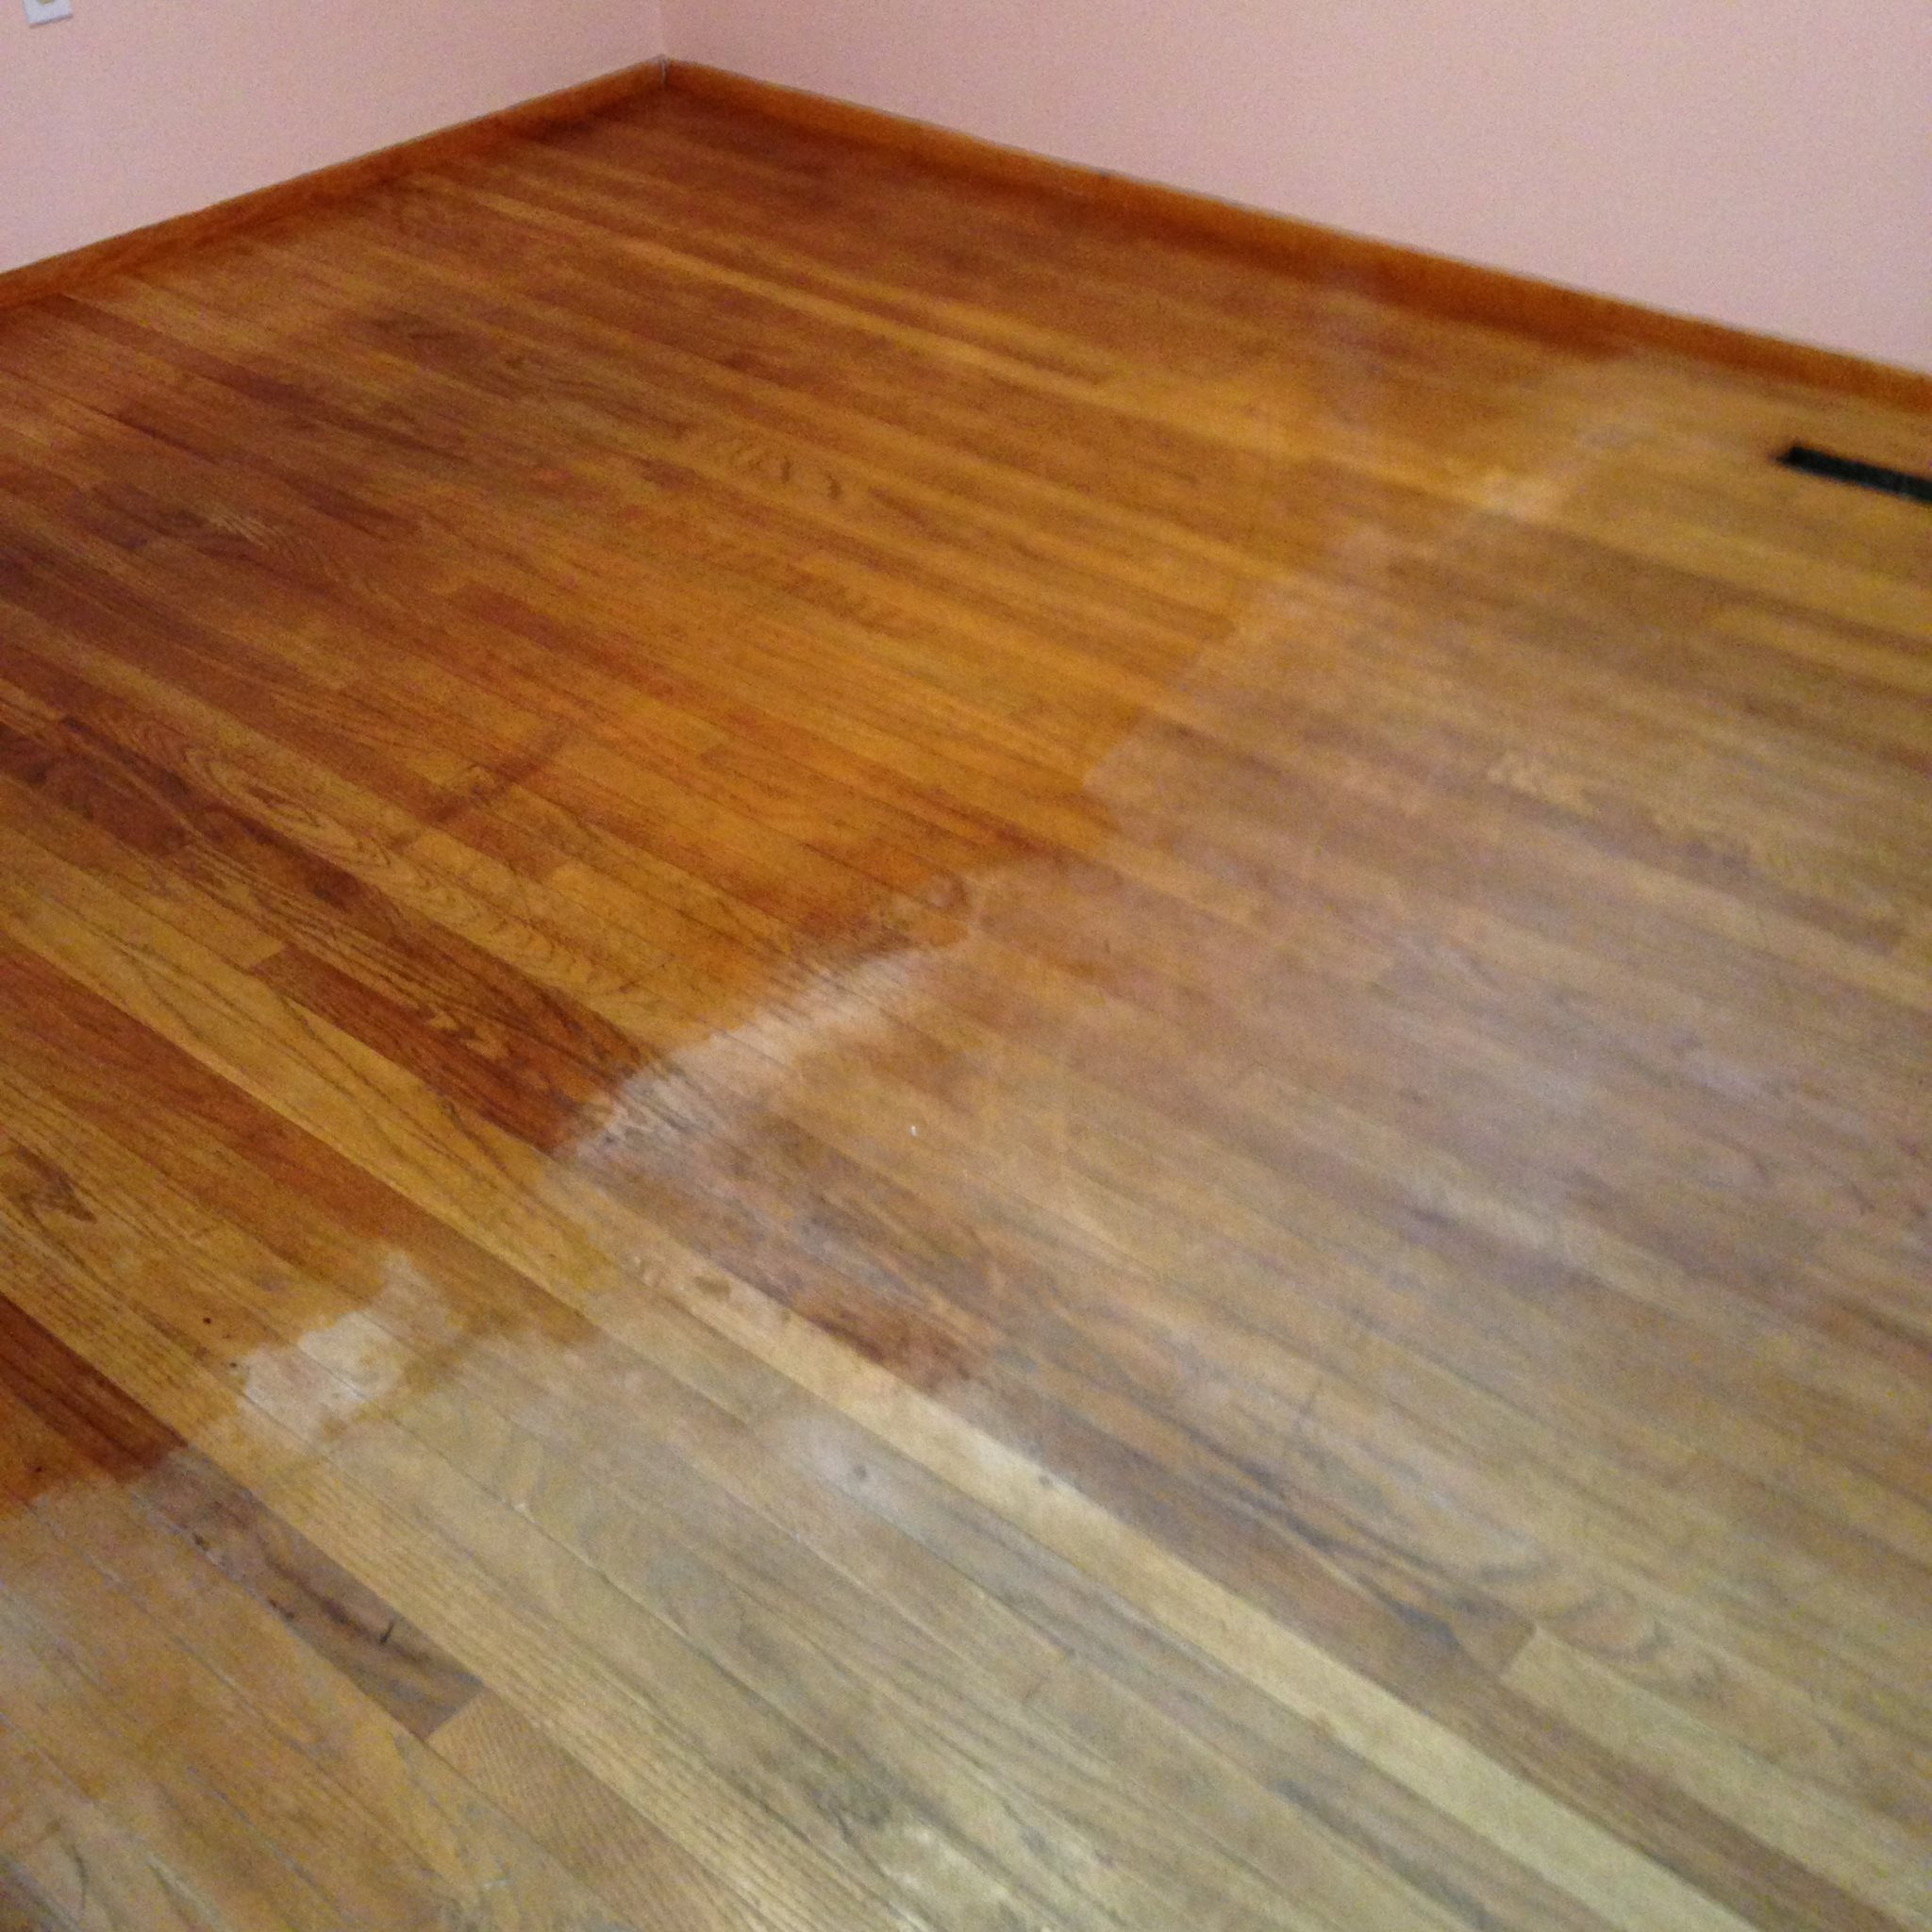 Hardwood Floor Cleaner Recipe Of 15 Wood Floor Hacks Every Homeowner Needs to Know Pertaining to Wood Floor Hacks 15